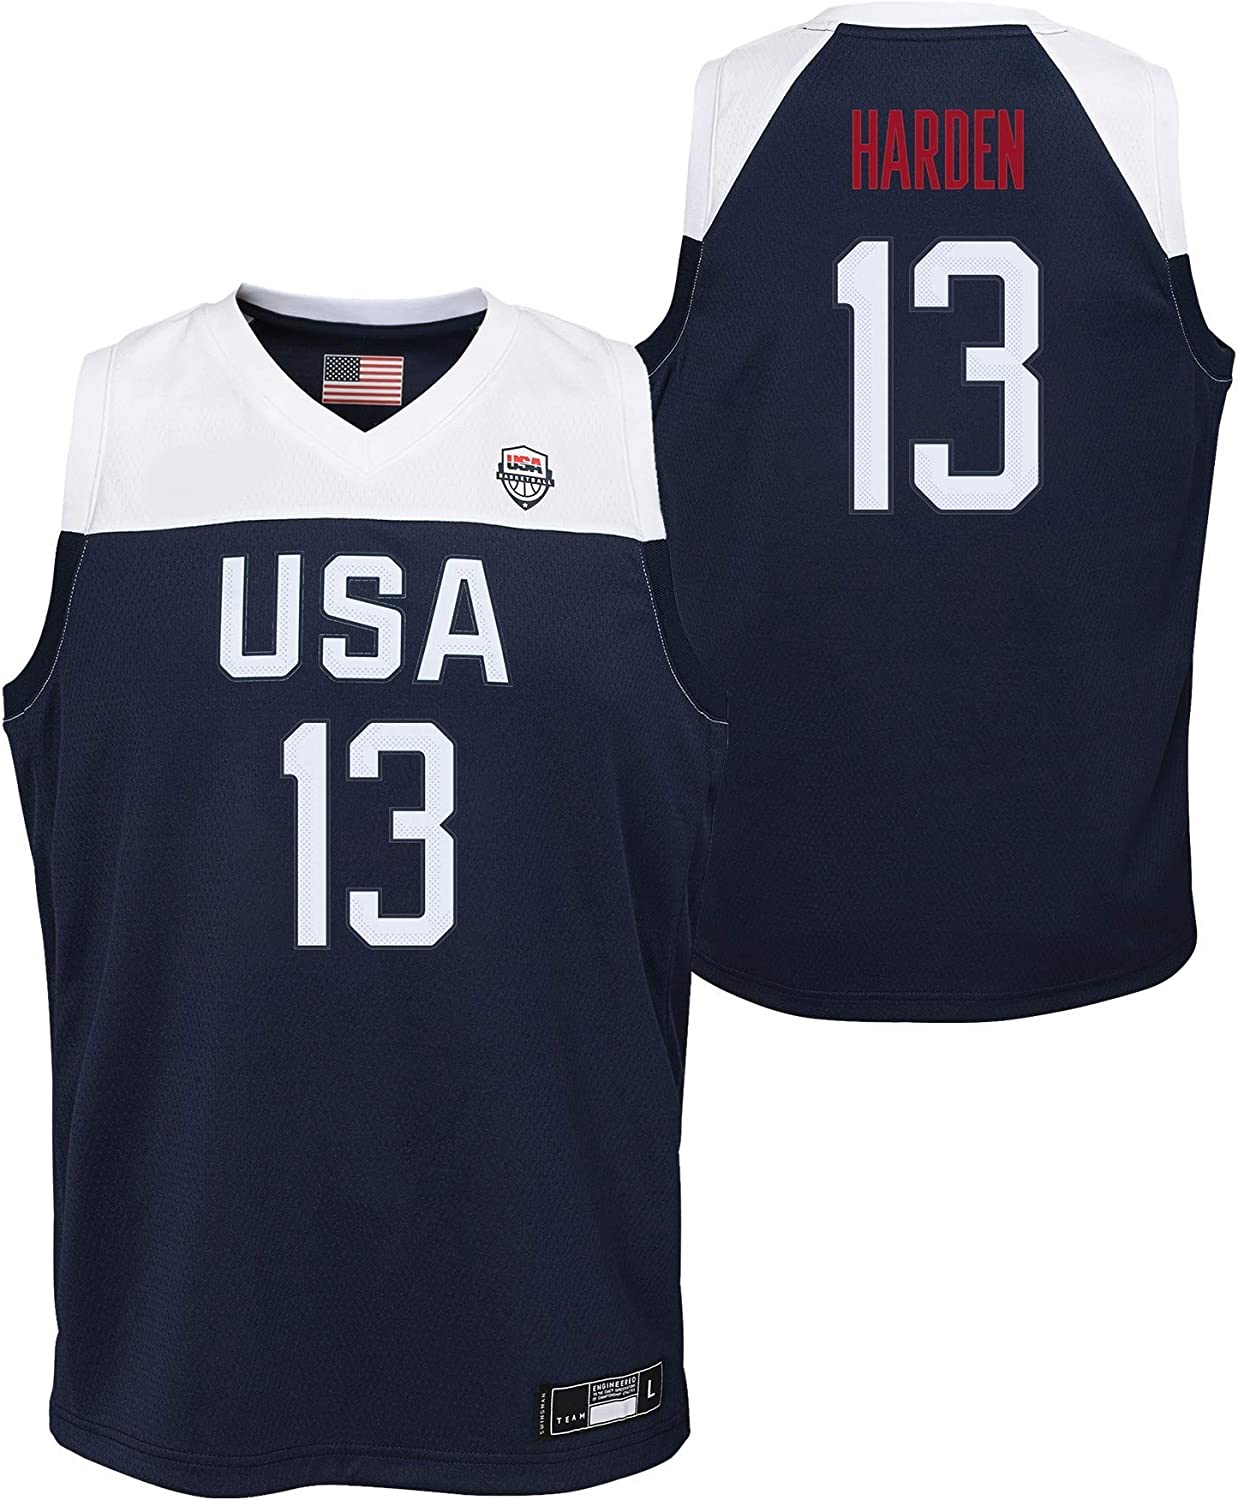 james harden jersey youth